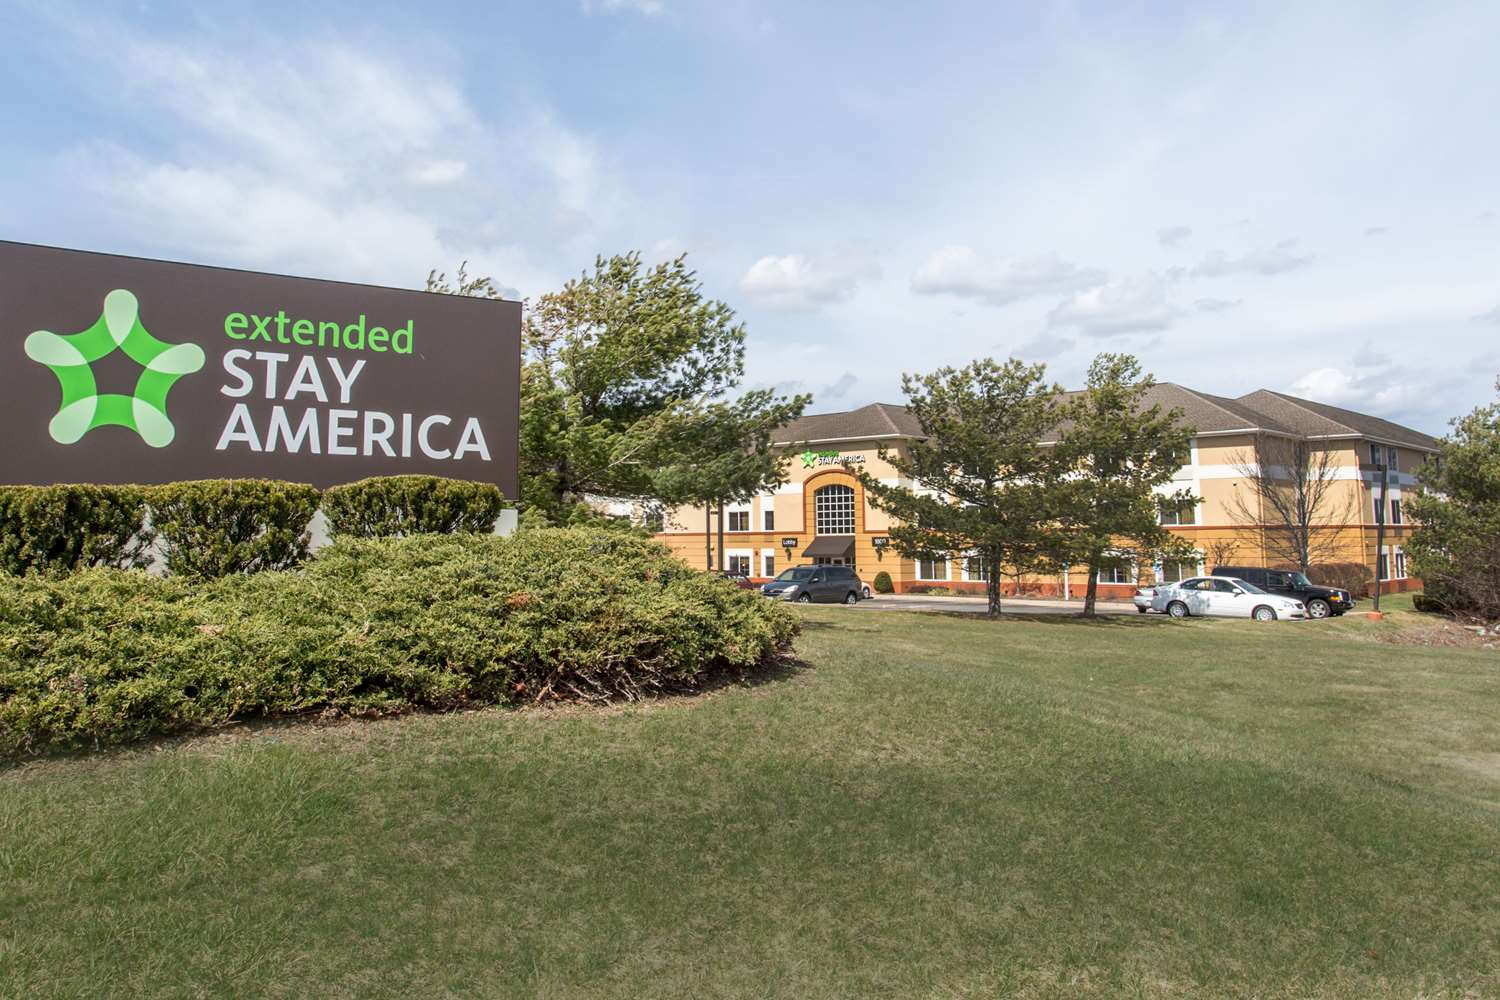 Extended Stay America Hotel Computer Drive Westborough Ma See Discounts